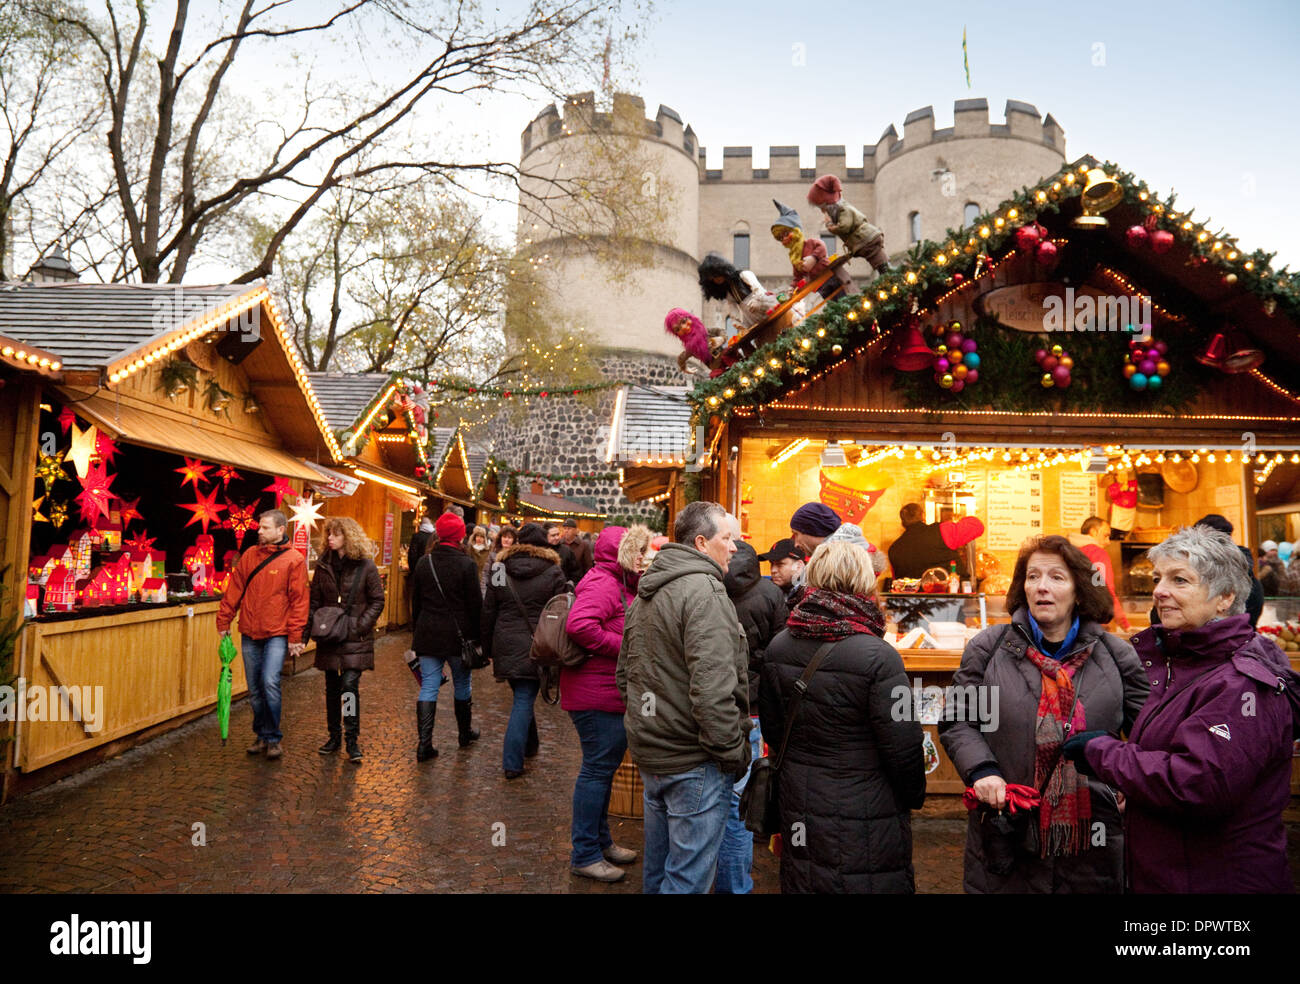 Cologne Christmas Market - people at the Market of Fairy tales, held in the Rudolfplatz, Cologne, Germany Europe - Stock Image